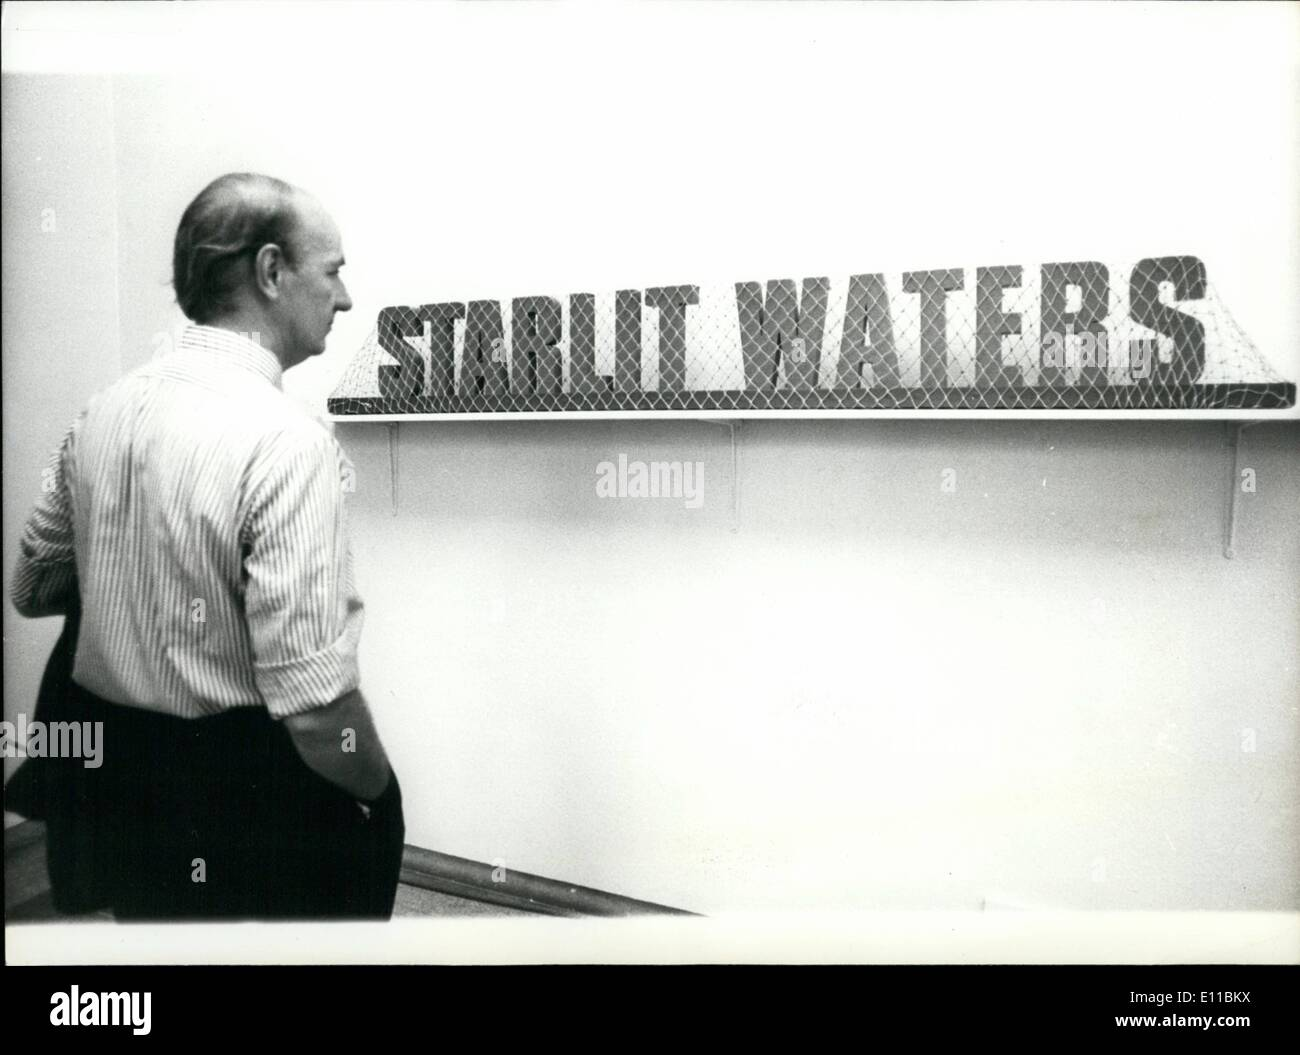 Aug. 08, 1976 - The Tate Gallery Pays £500 for two wooden''fire brick scandal'' when 120 bricks were bought as a work of art, the Tate Gallery has paid a reported £500 for two wooden words covered by a fishing net. The words ''Starlit Waters'', the name of a fishing boat, are painted green and stand on a dark blue base covered with orange netting. The exhibit is now on display in the gallery, among 45 other recent acquisitions, ''Starlit waters'' was constructed by Ian Hamilton Finlay,51, the Scottish poet, nine years ago when he started one of several creations - Stock Image